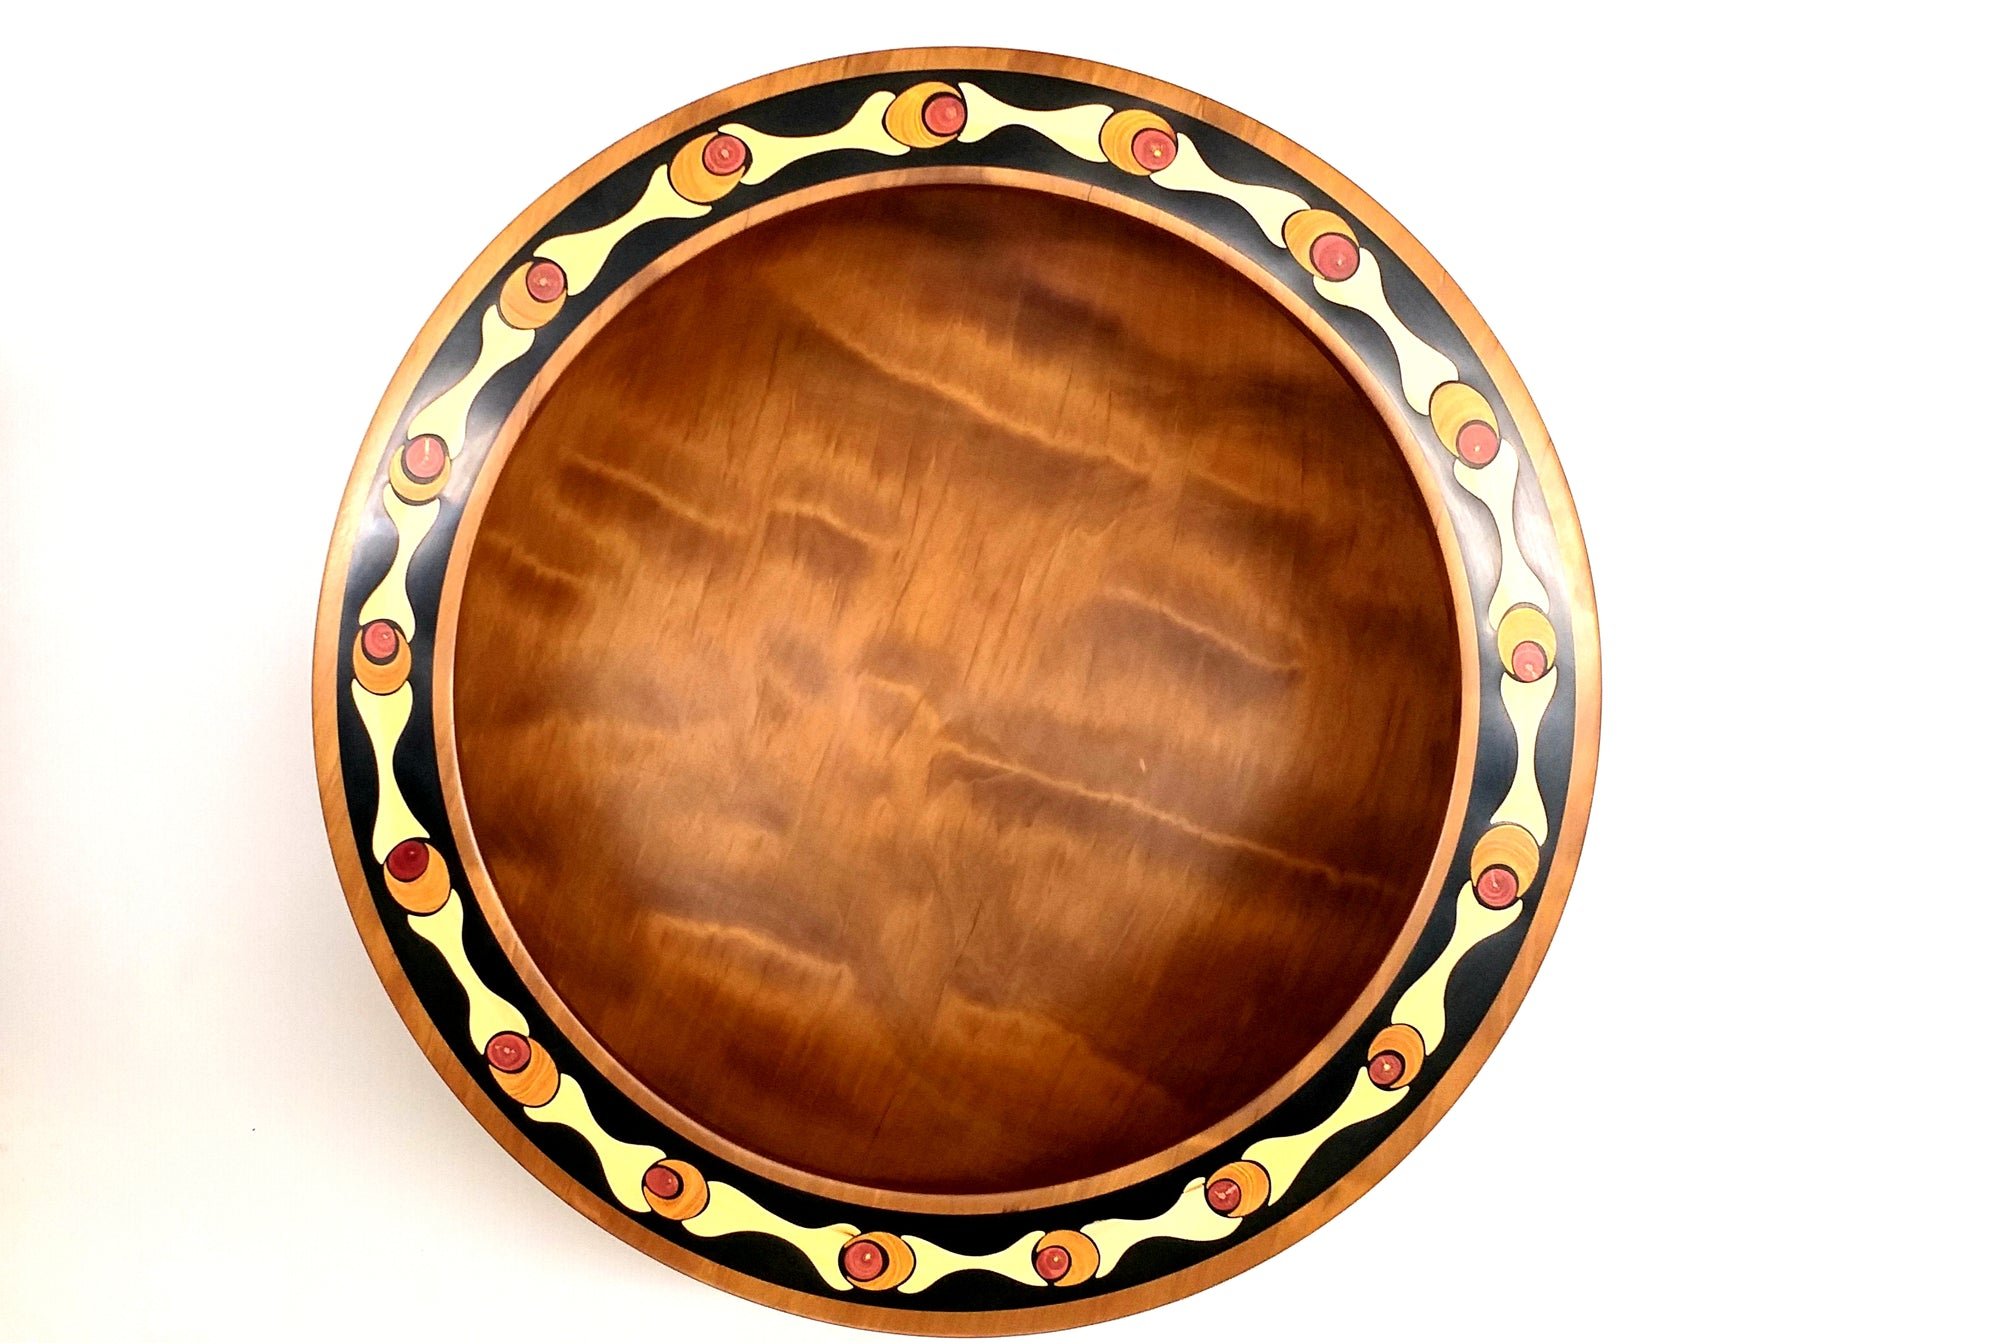 Giant Kauri Decorated Bowl